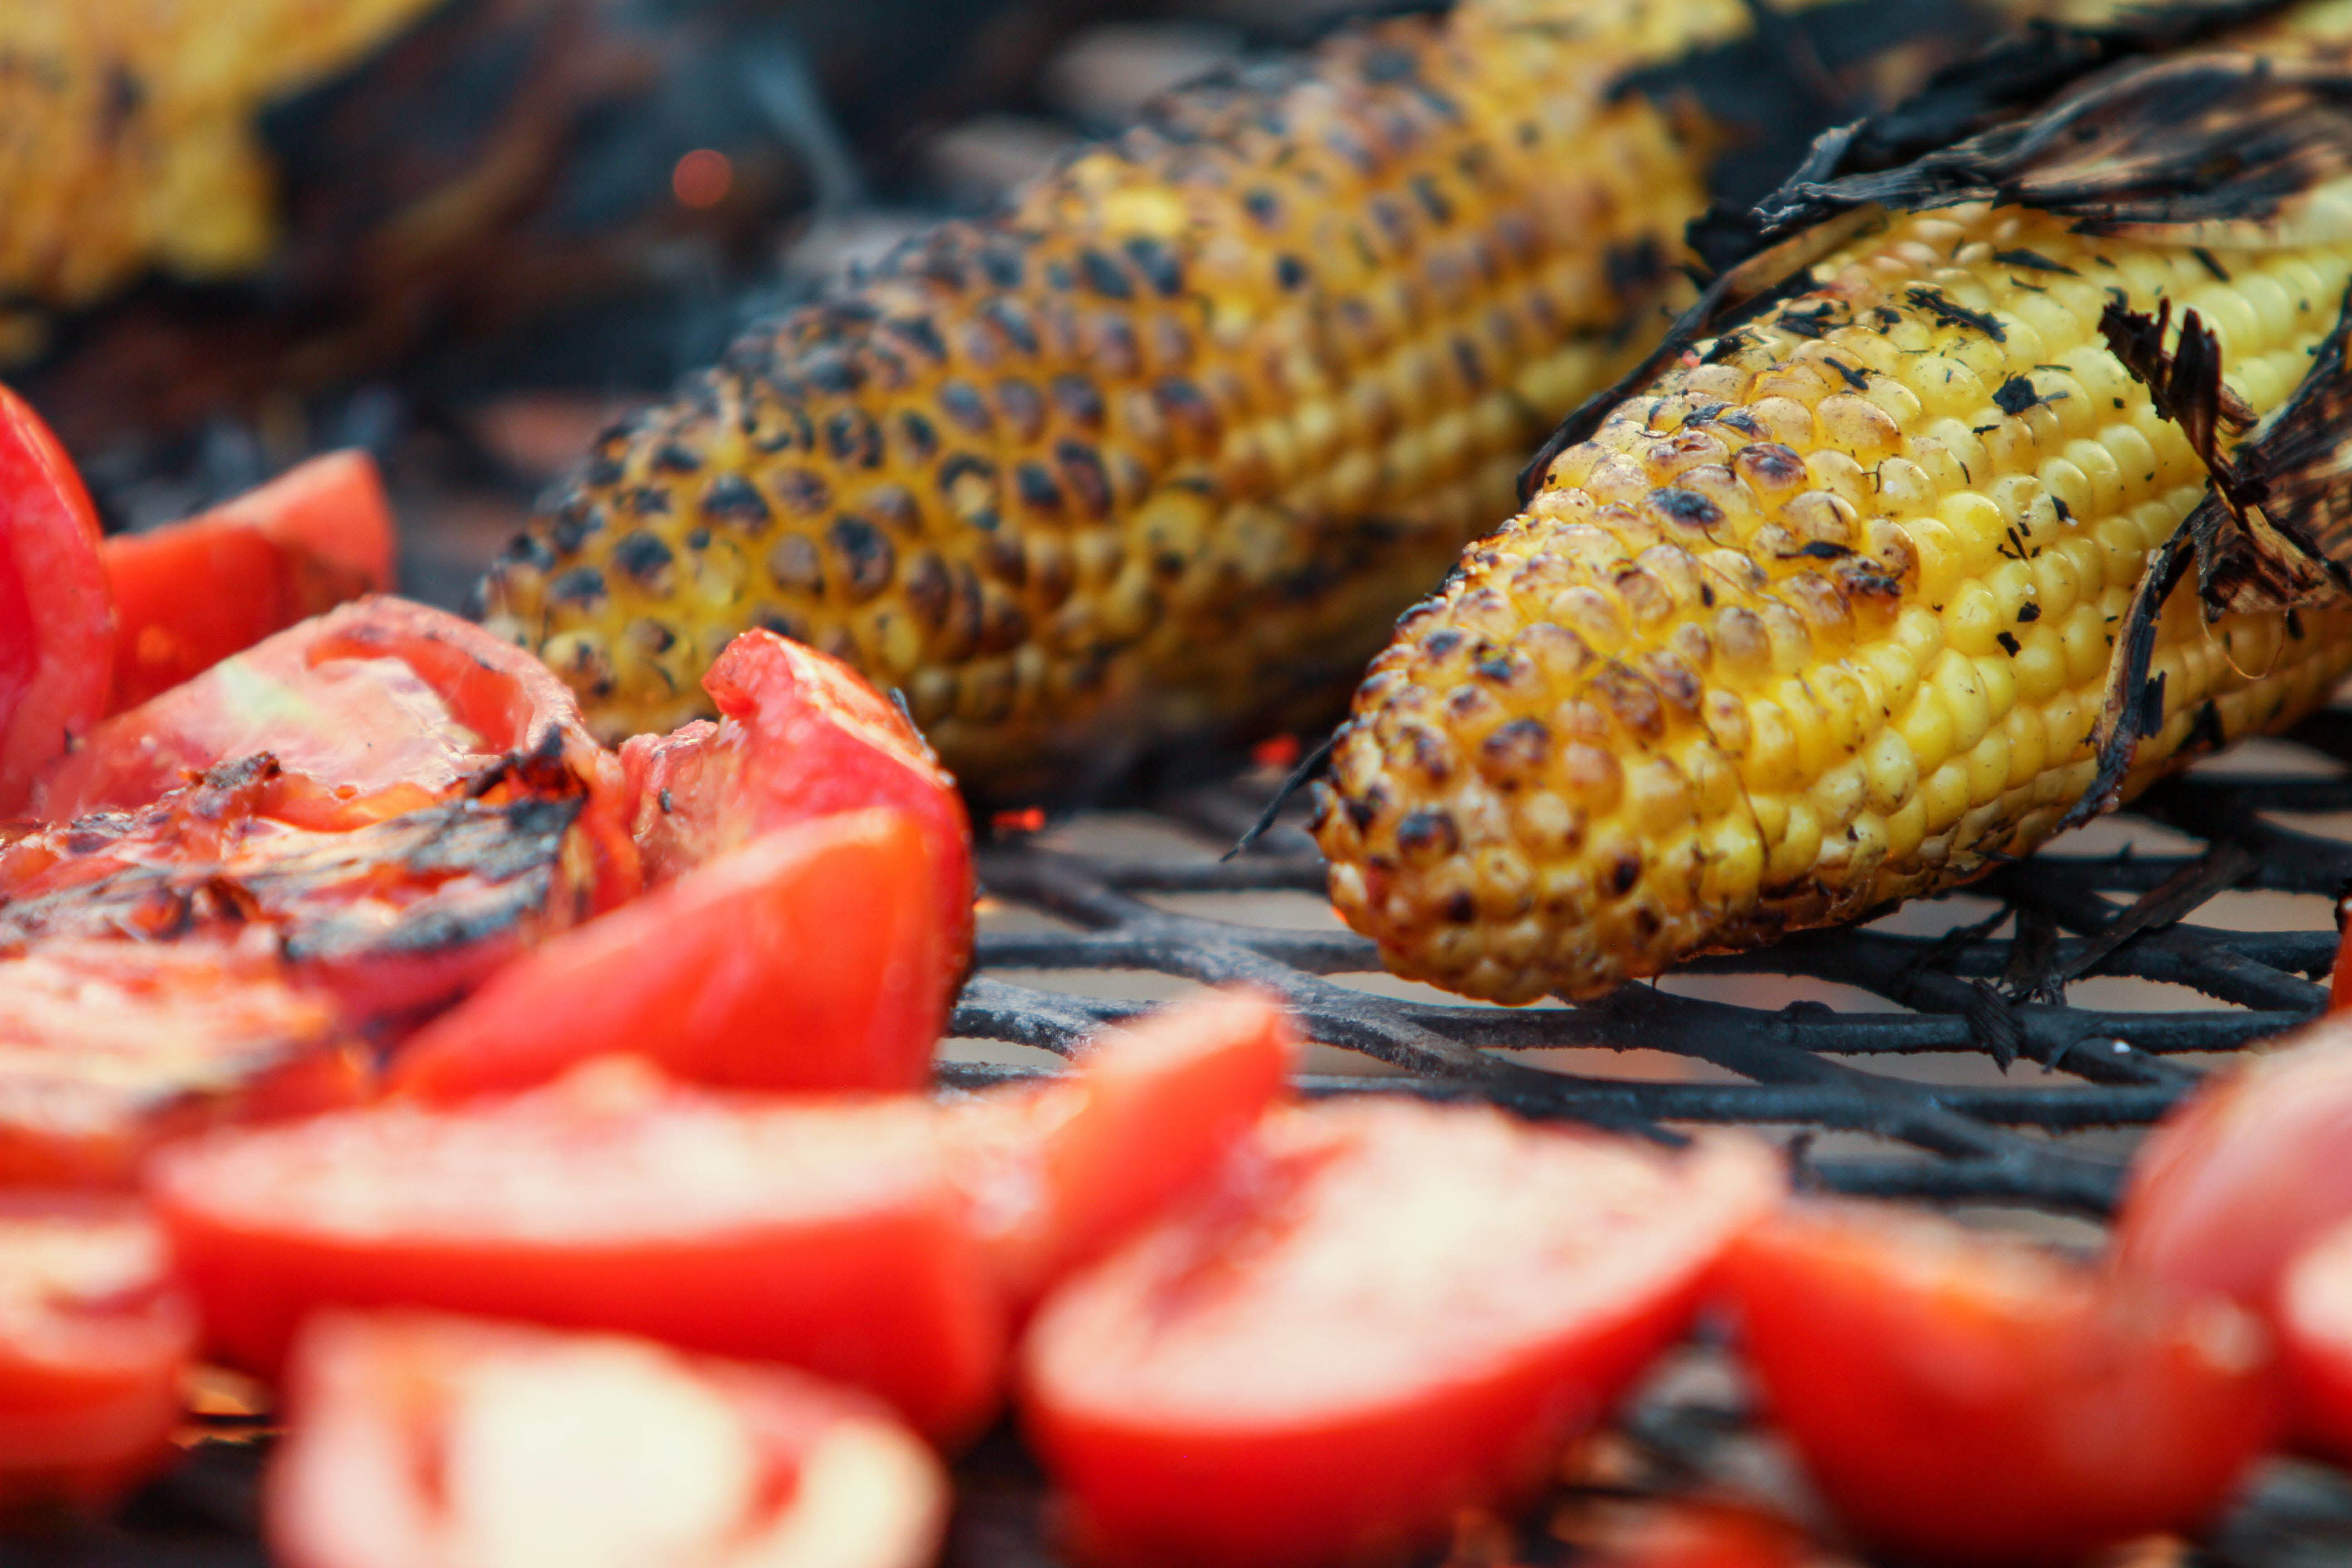 Grilled Corn on the Cob from Cedar River Smokehouse in Renton, Washington - barbecue restaurants in Renton - Renton barbecue restaurants - BBQ in Renton